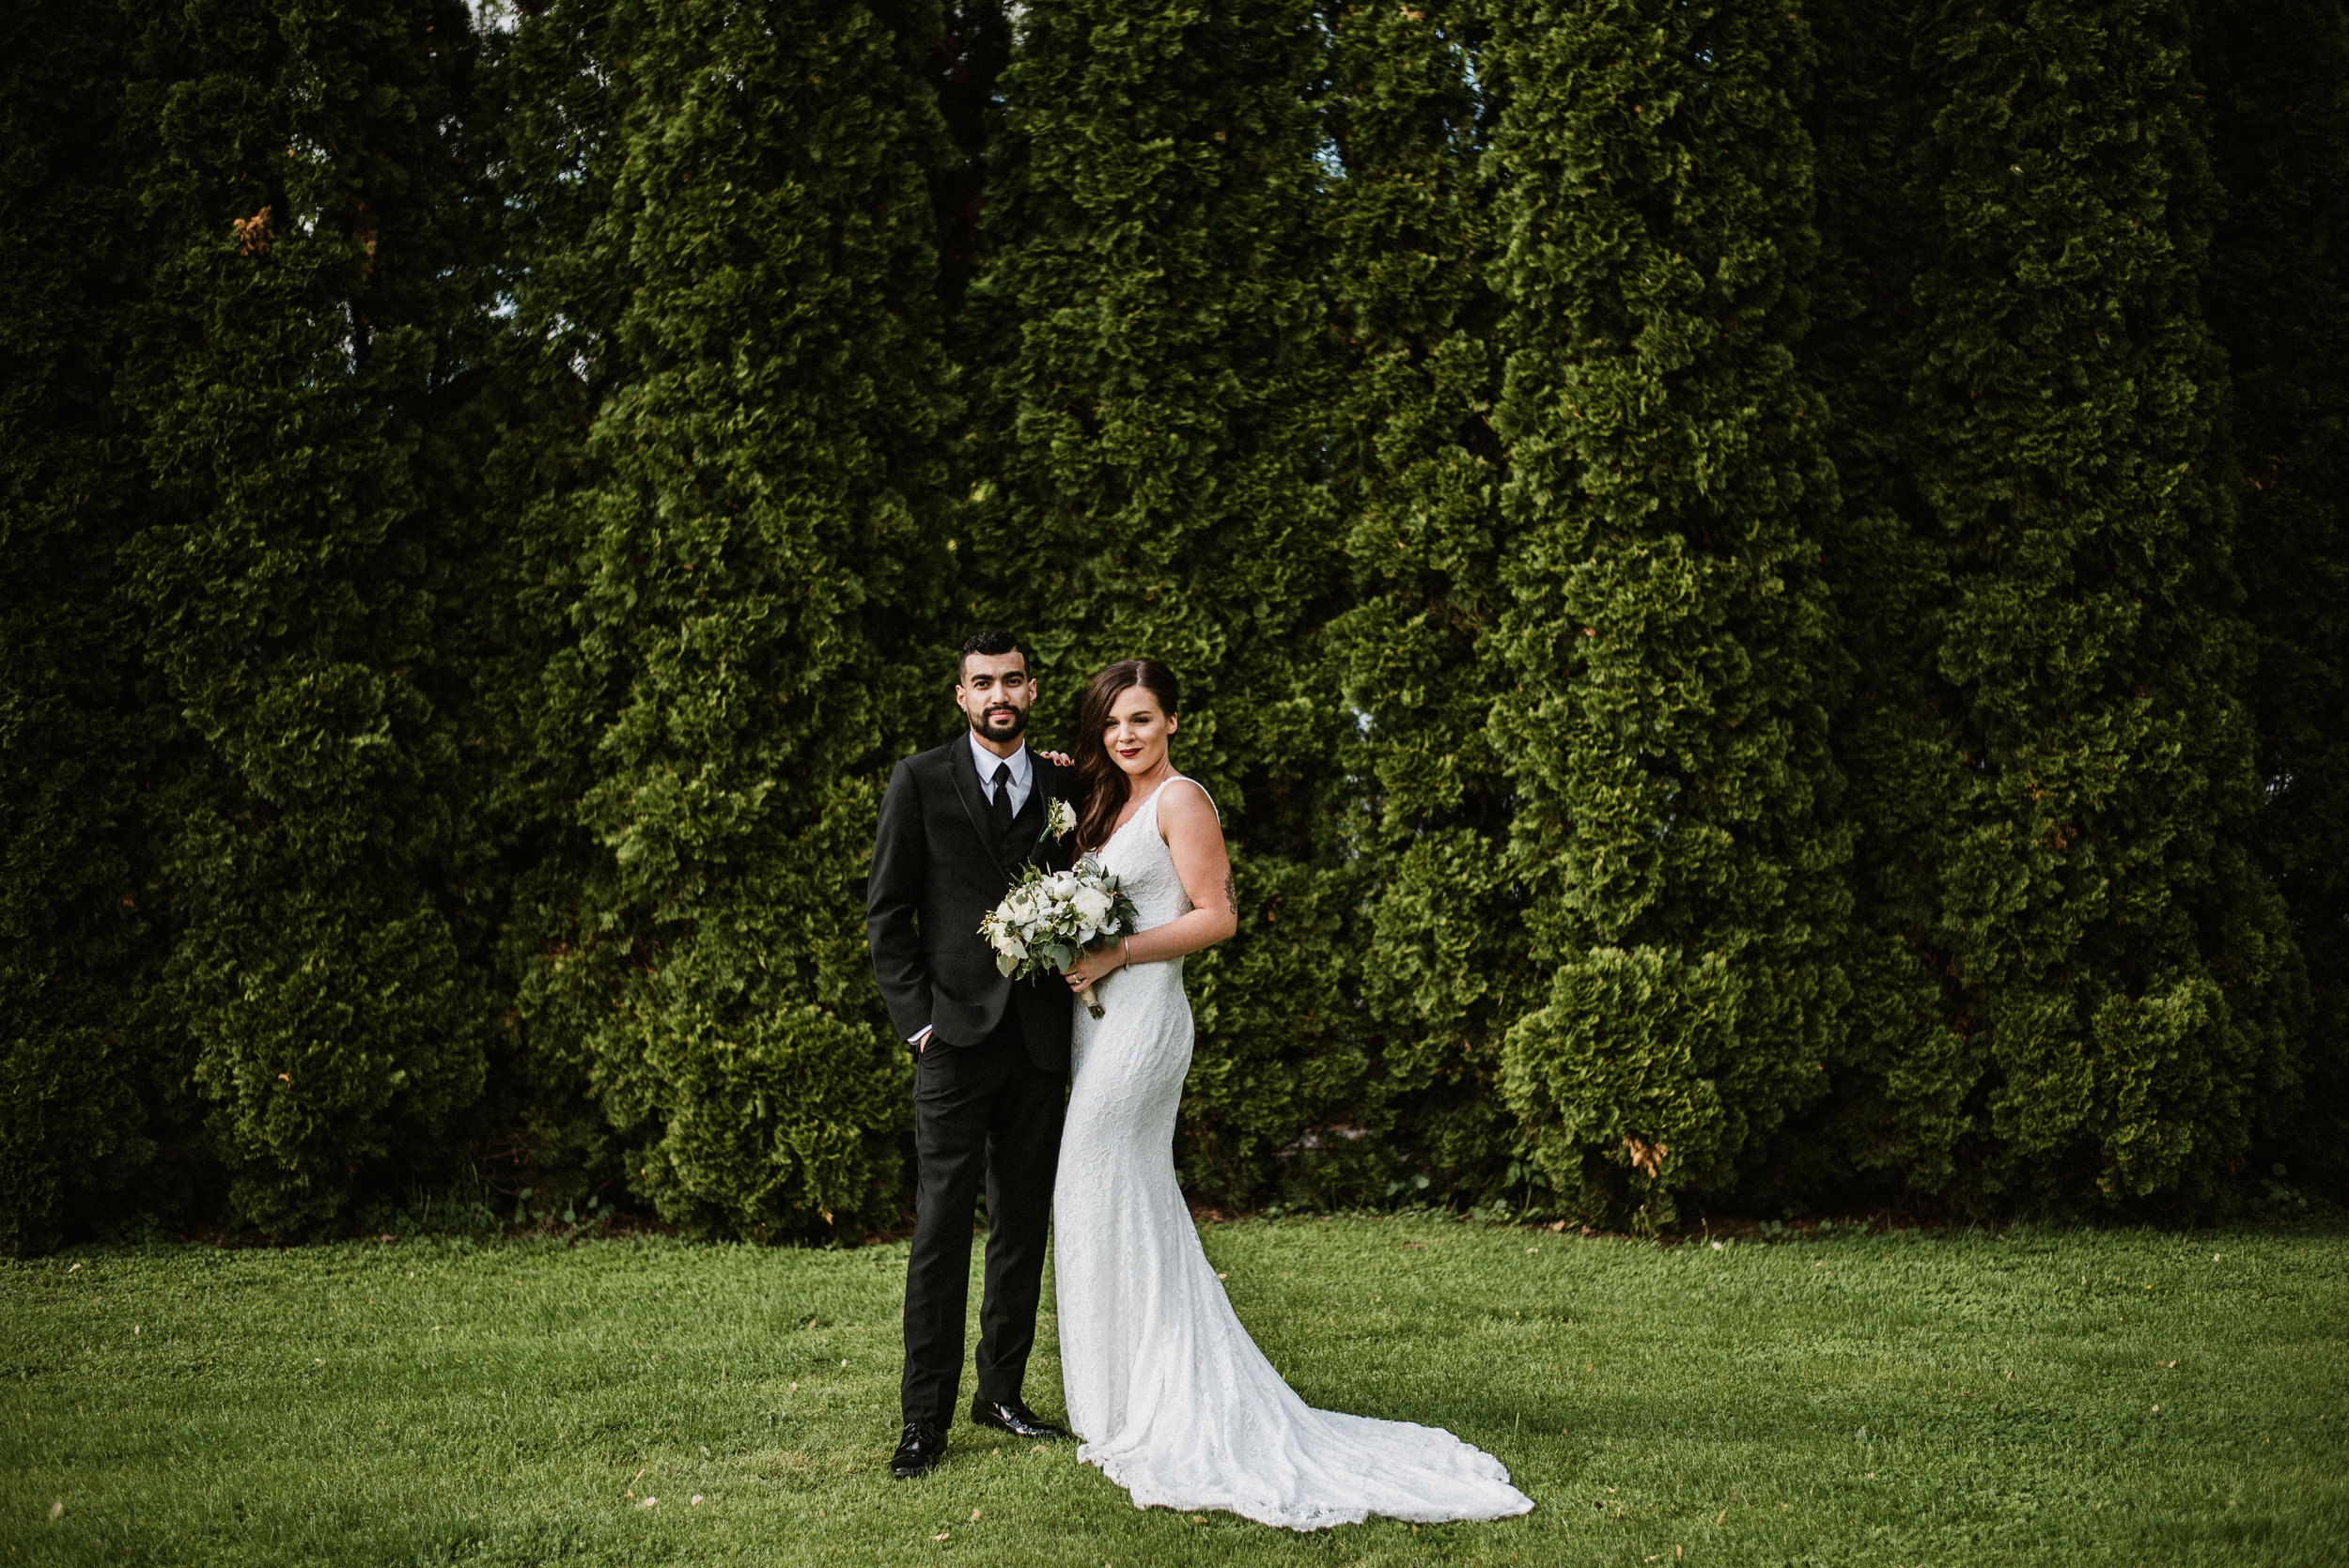 Kim and Art - A Timeless Romantic Spring Wedding | Historic Home In Dixon, IL